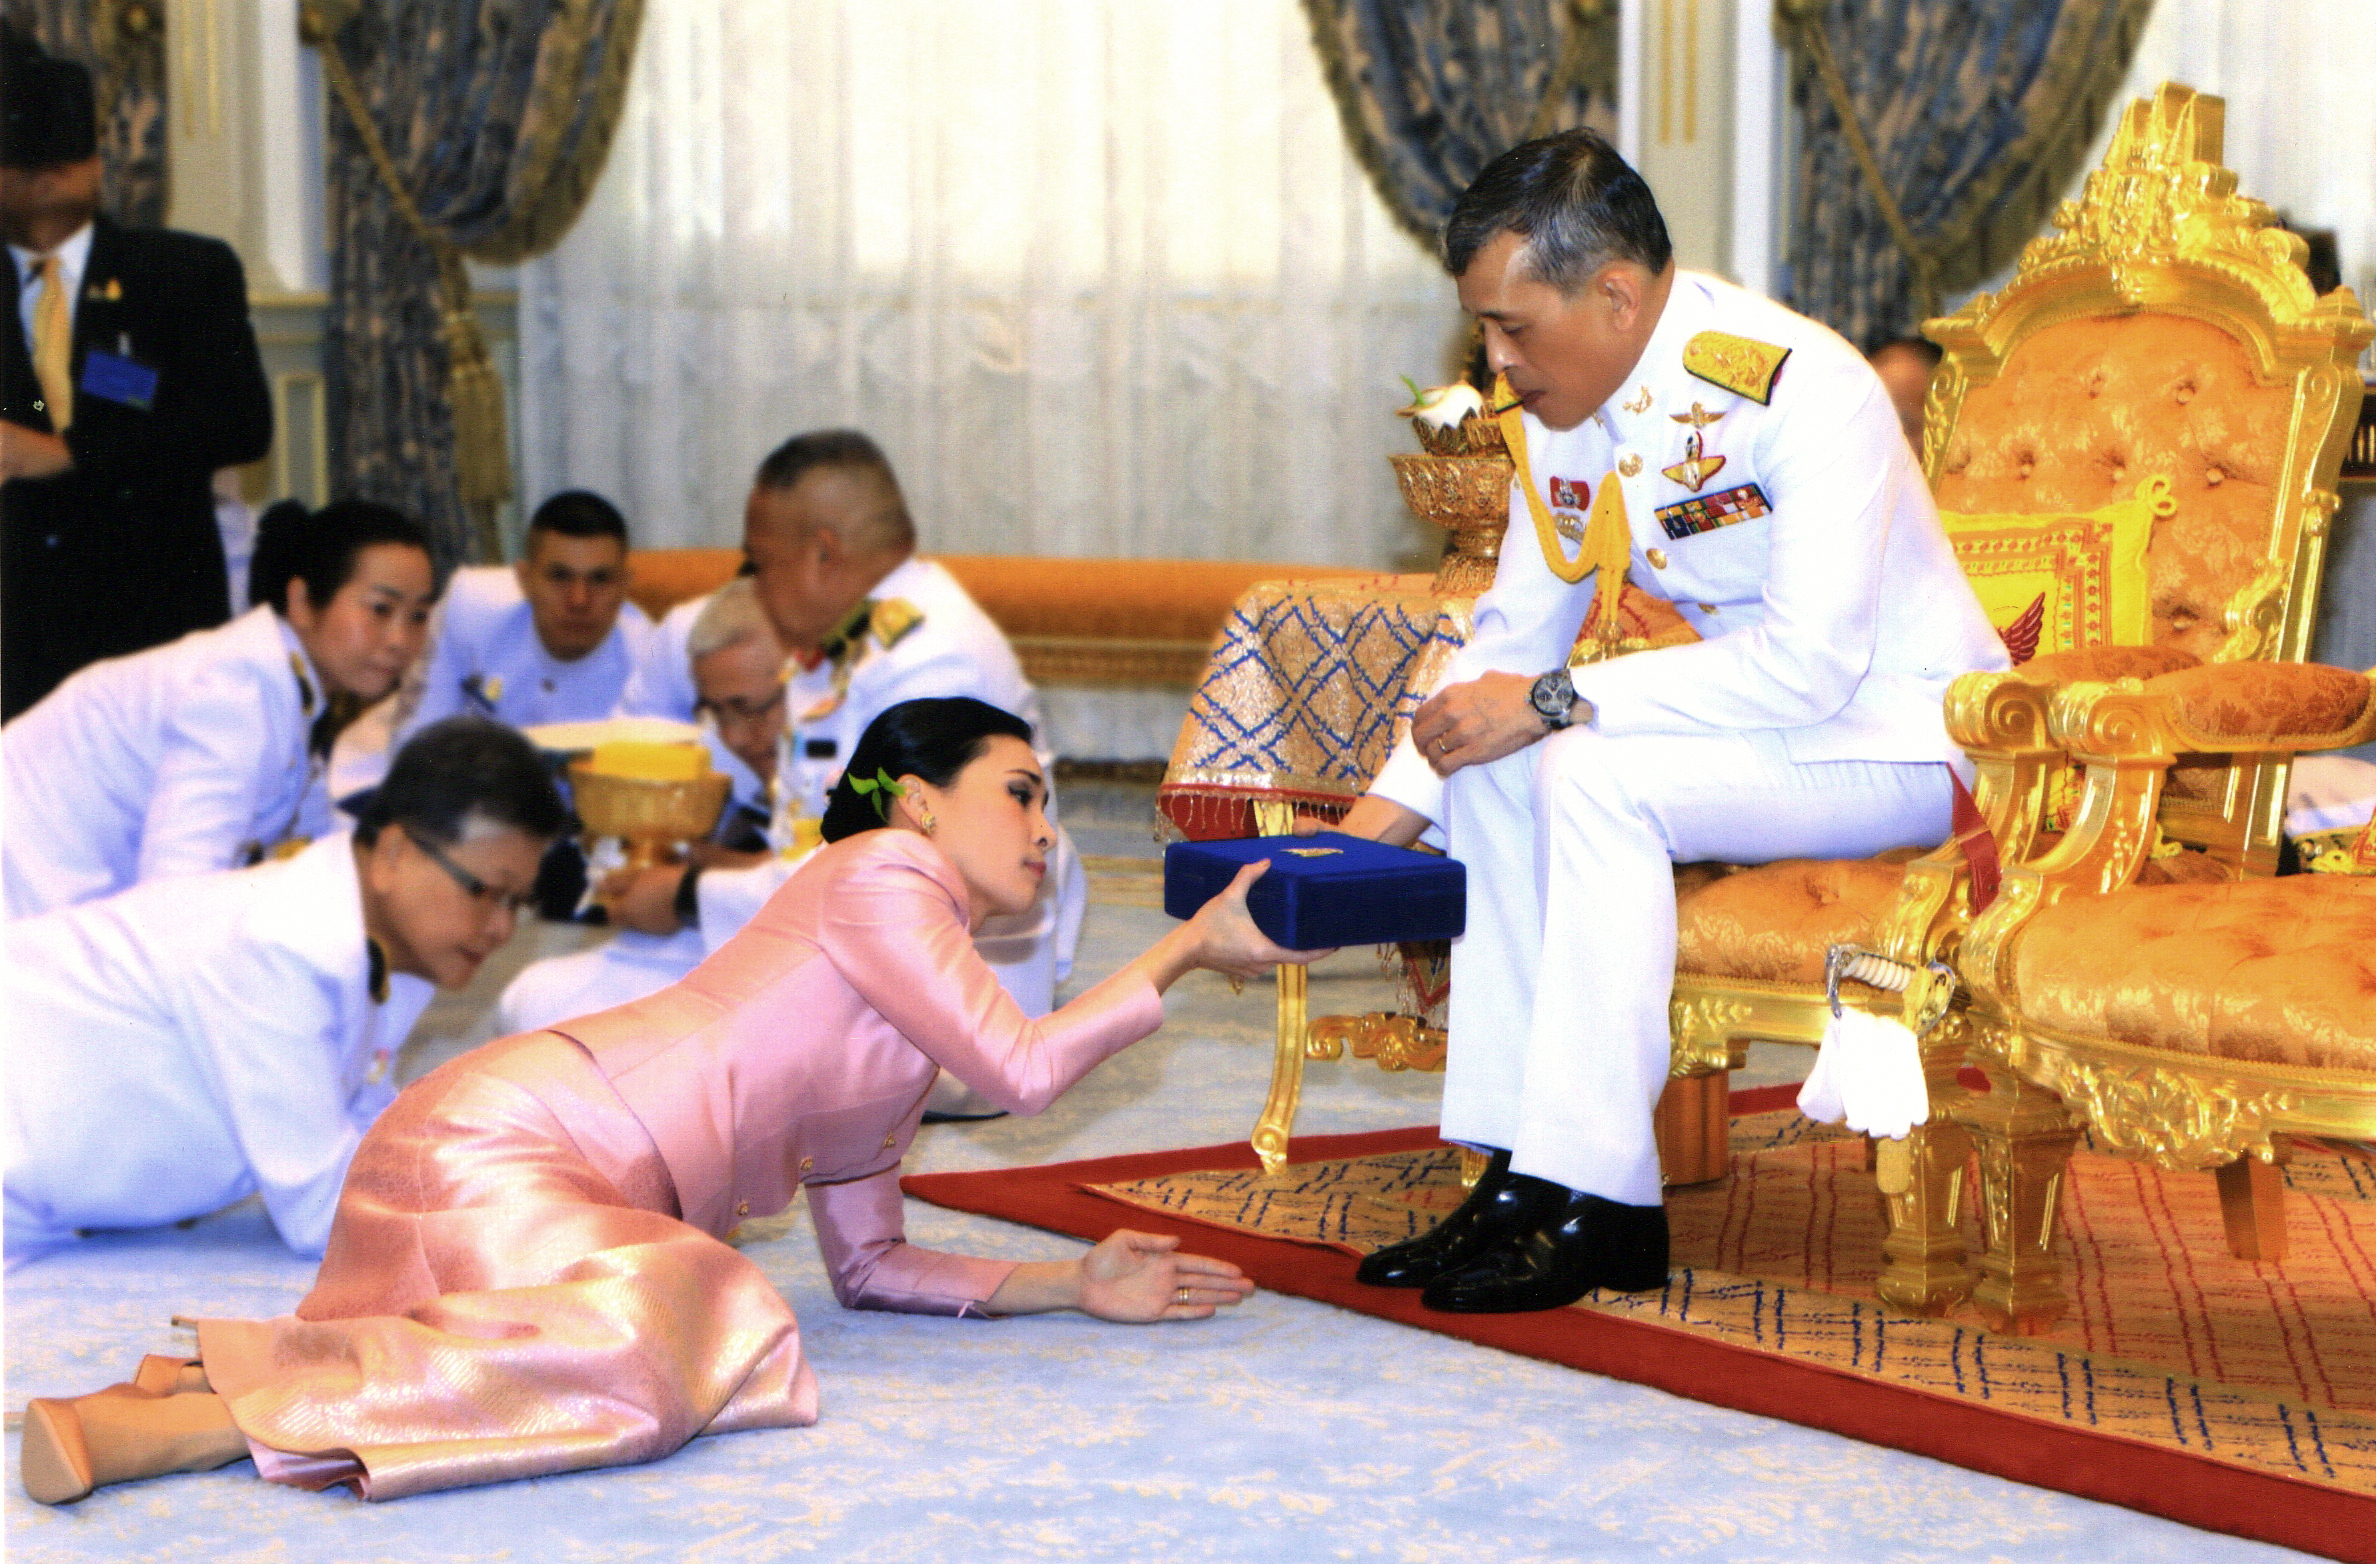 Thailand's King Maha Vajiralongkorn is shown in this file photo released by Bureau of the Royal Household on May 1, 2019.